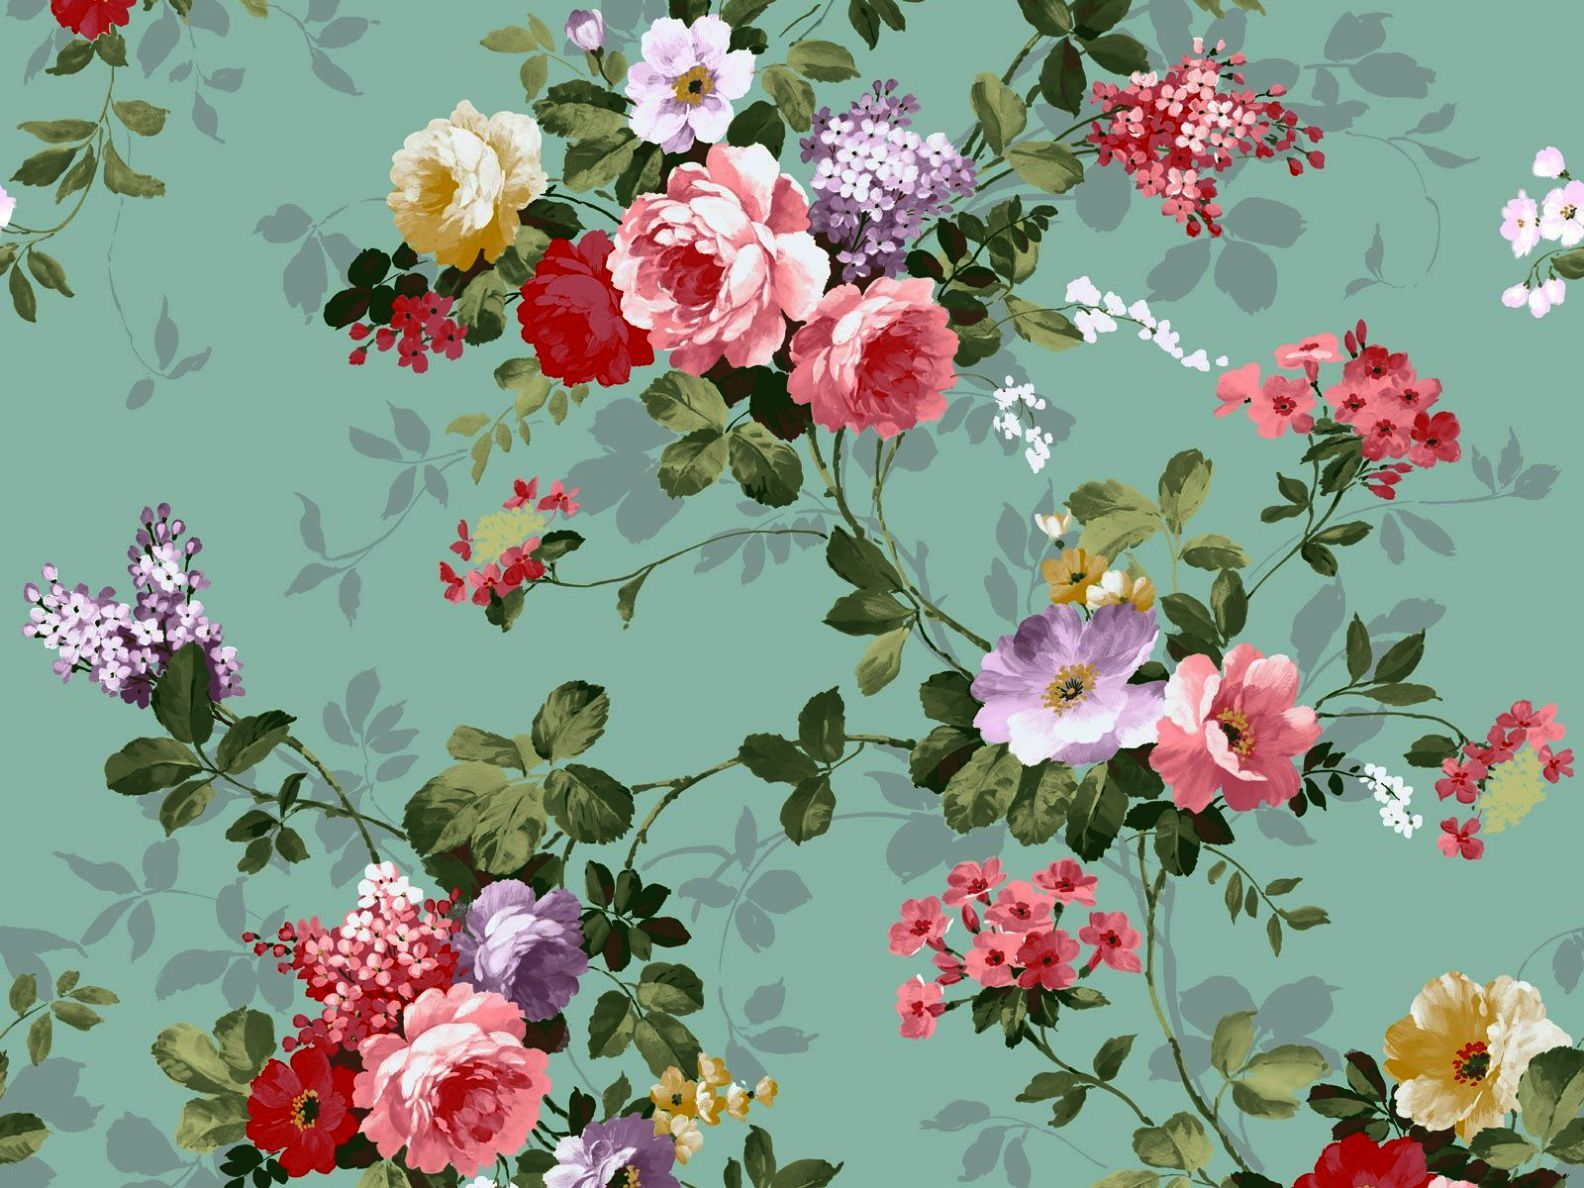 Floral Wallpapershaokhome Dr3073 Non Woven Vintage Flower Wallpaper Blue Home Bedroom Wallpaper 20 8 X 393 7 Saleprice 16 Floral Wallpaper Desktop Vintage Floral Wallpapers Vintage Floral Backgrounds Flower bedroom wallpaper images